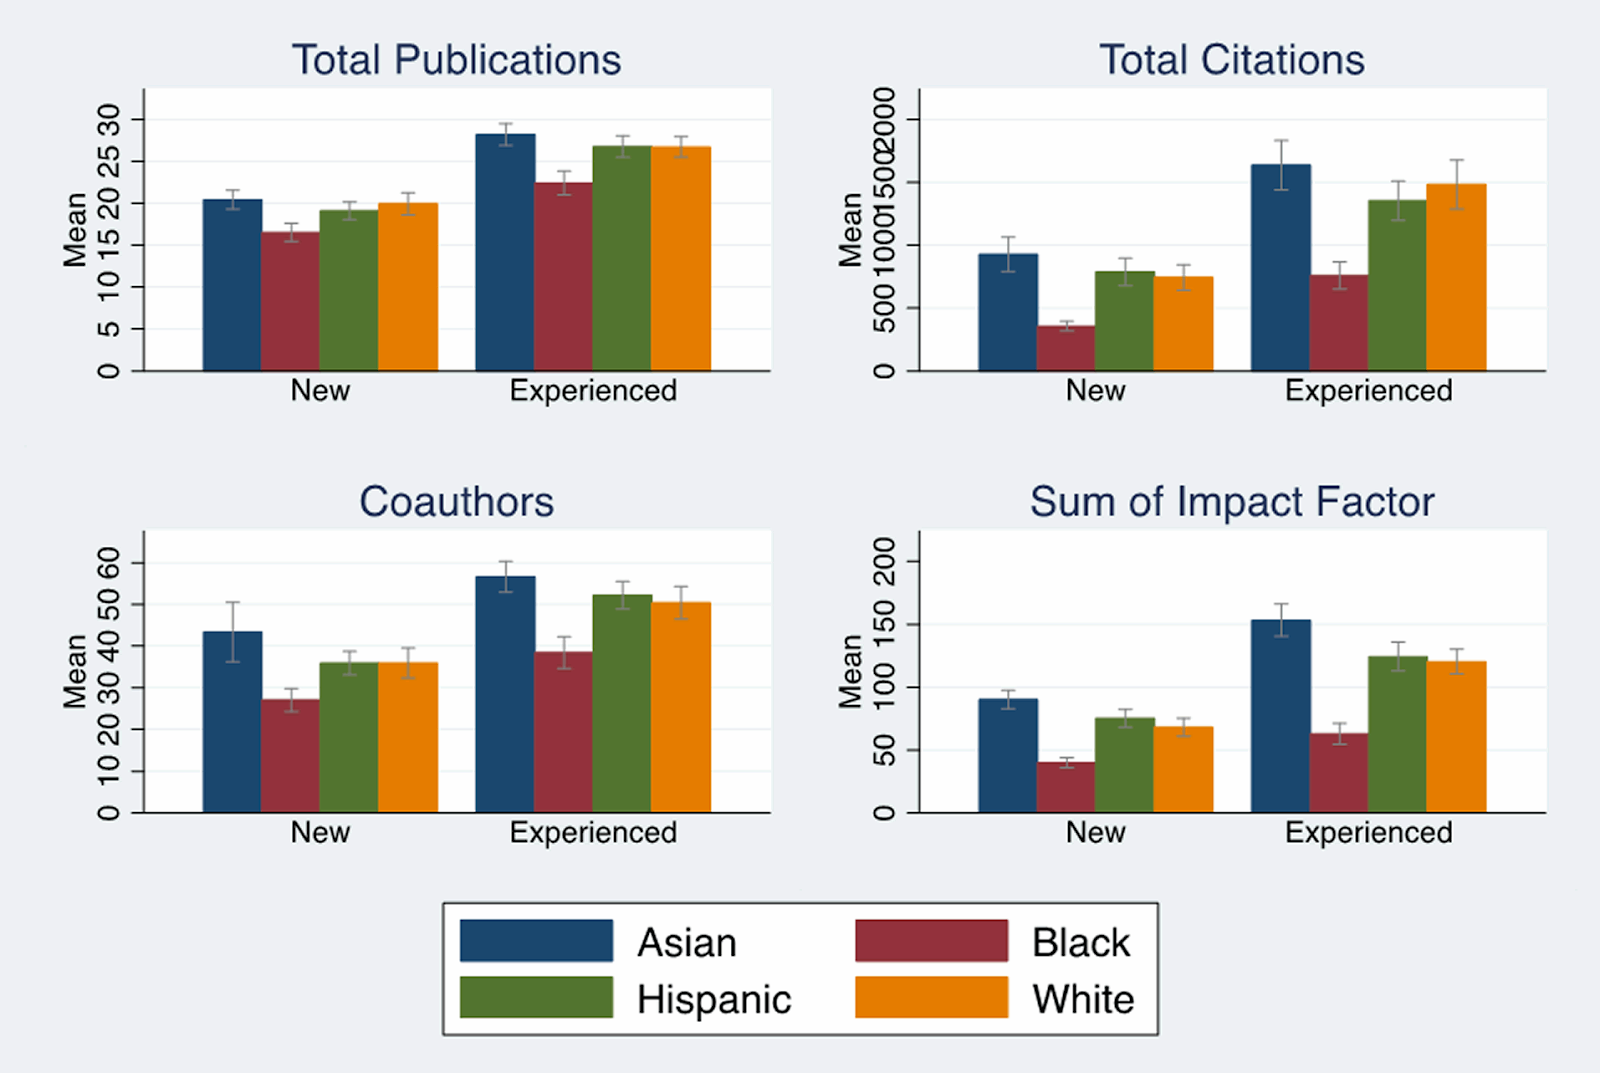 Image showing disparities in total publications, total citations, coauthors, and sum of impact factors for asian, hispanic, black, and white NIH applicants